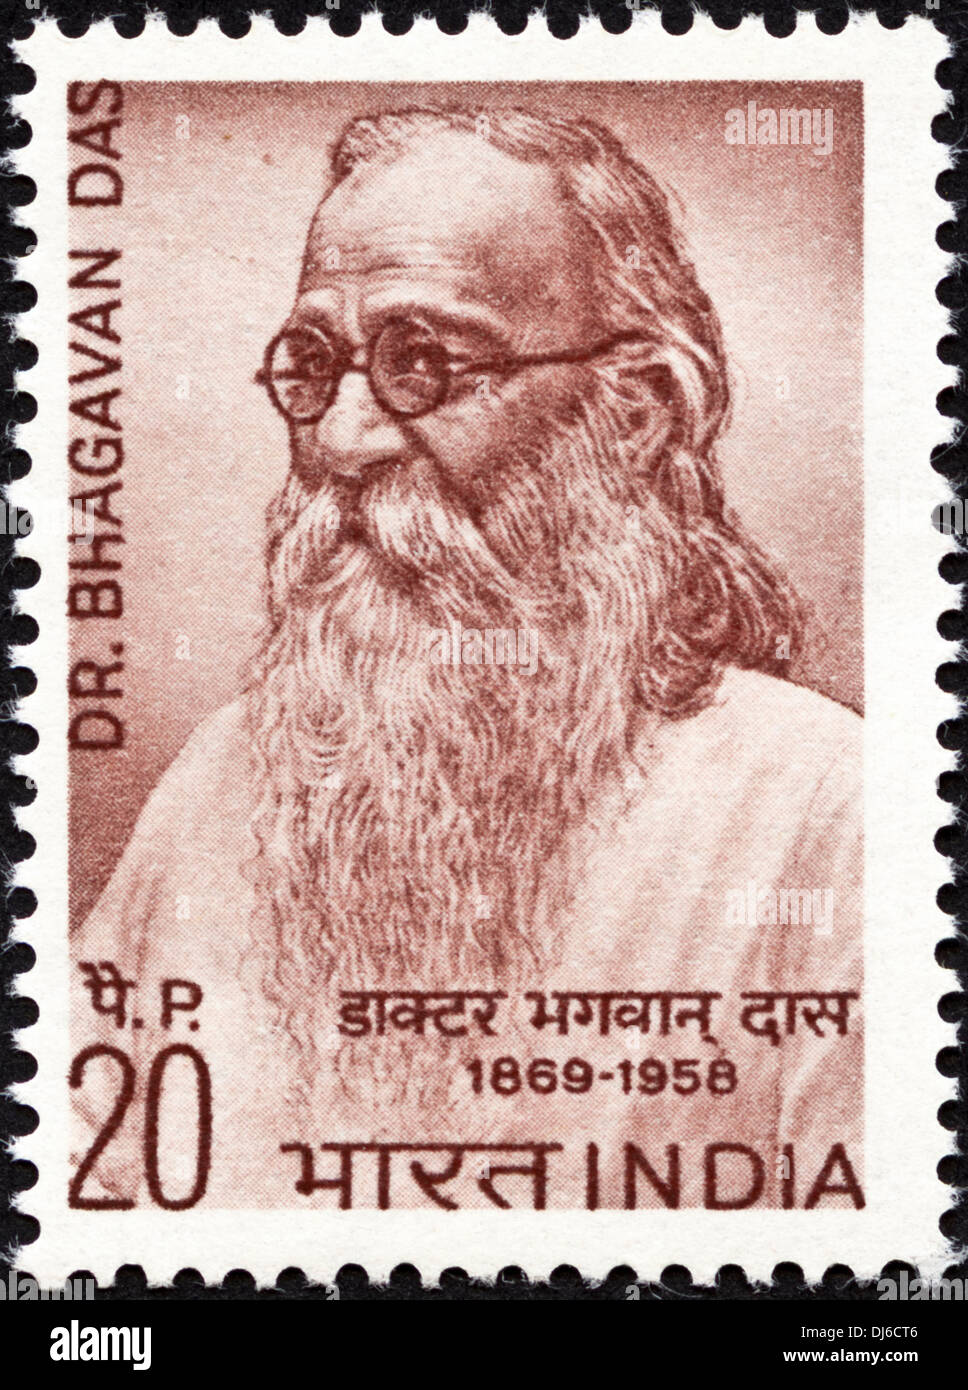 postage stamp India featuring Dr Bhagavan Das 1869 - 1958 dated 1969 - Stock Image